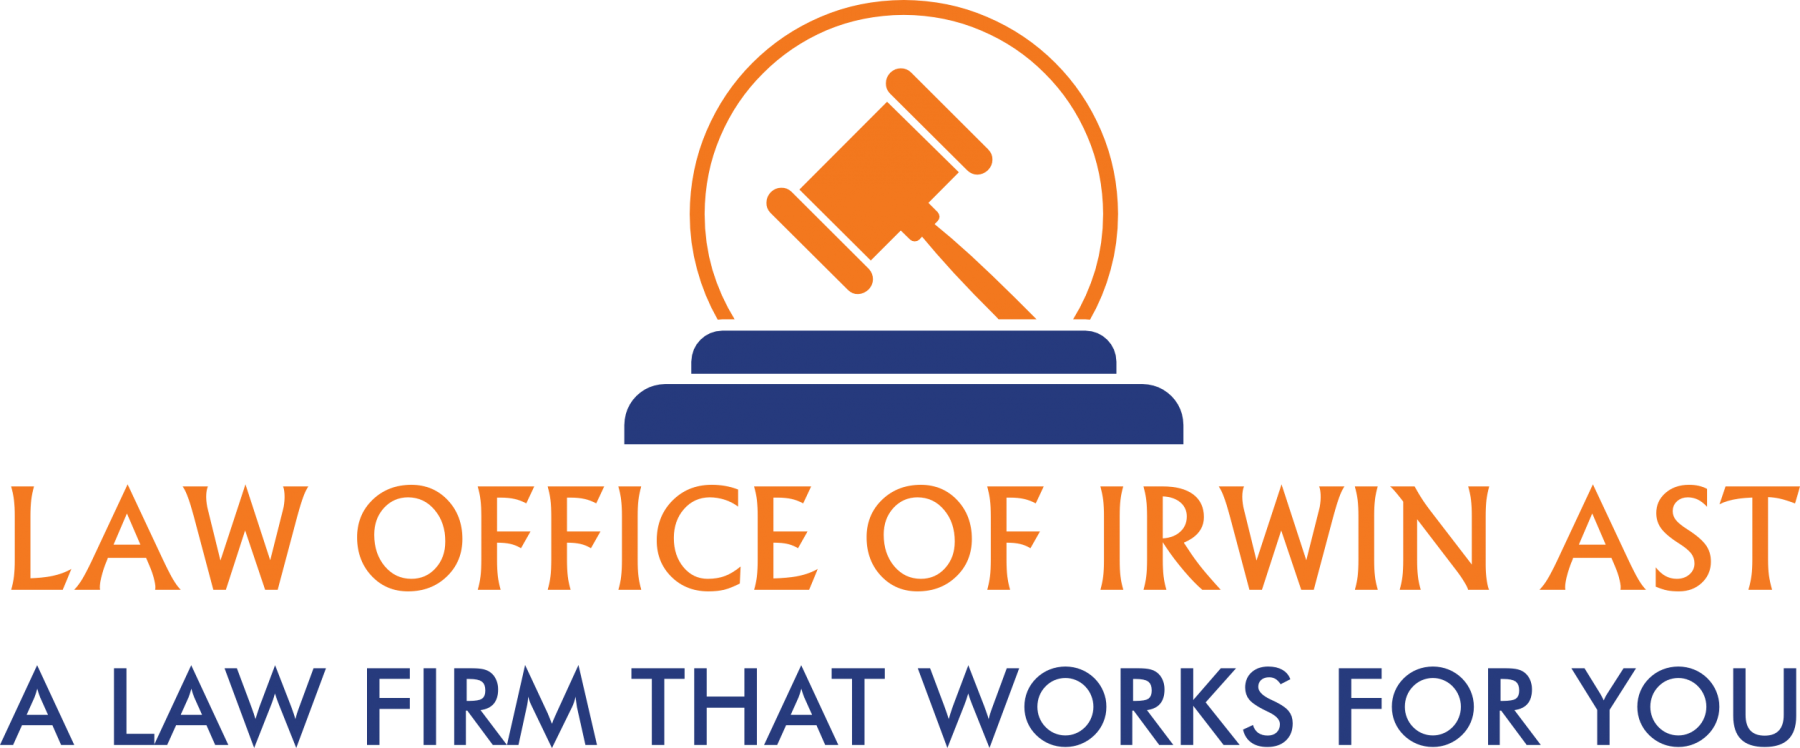 Law Office of Irwin Ast Outlines What Makes Them Unique